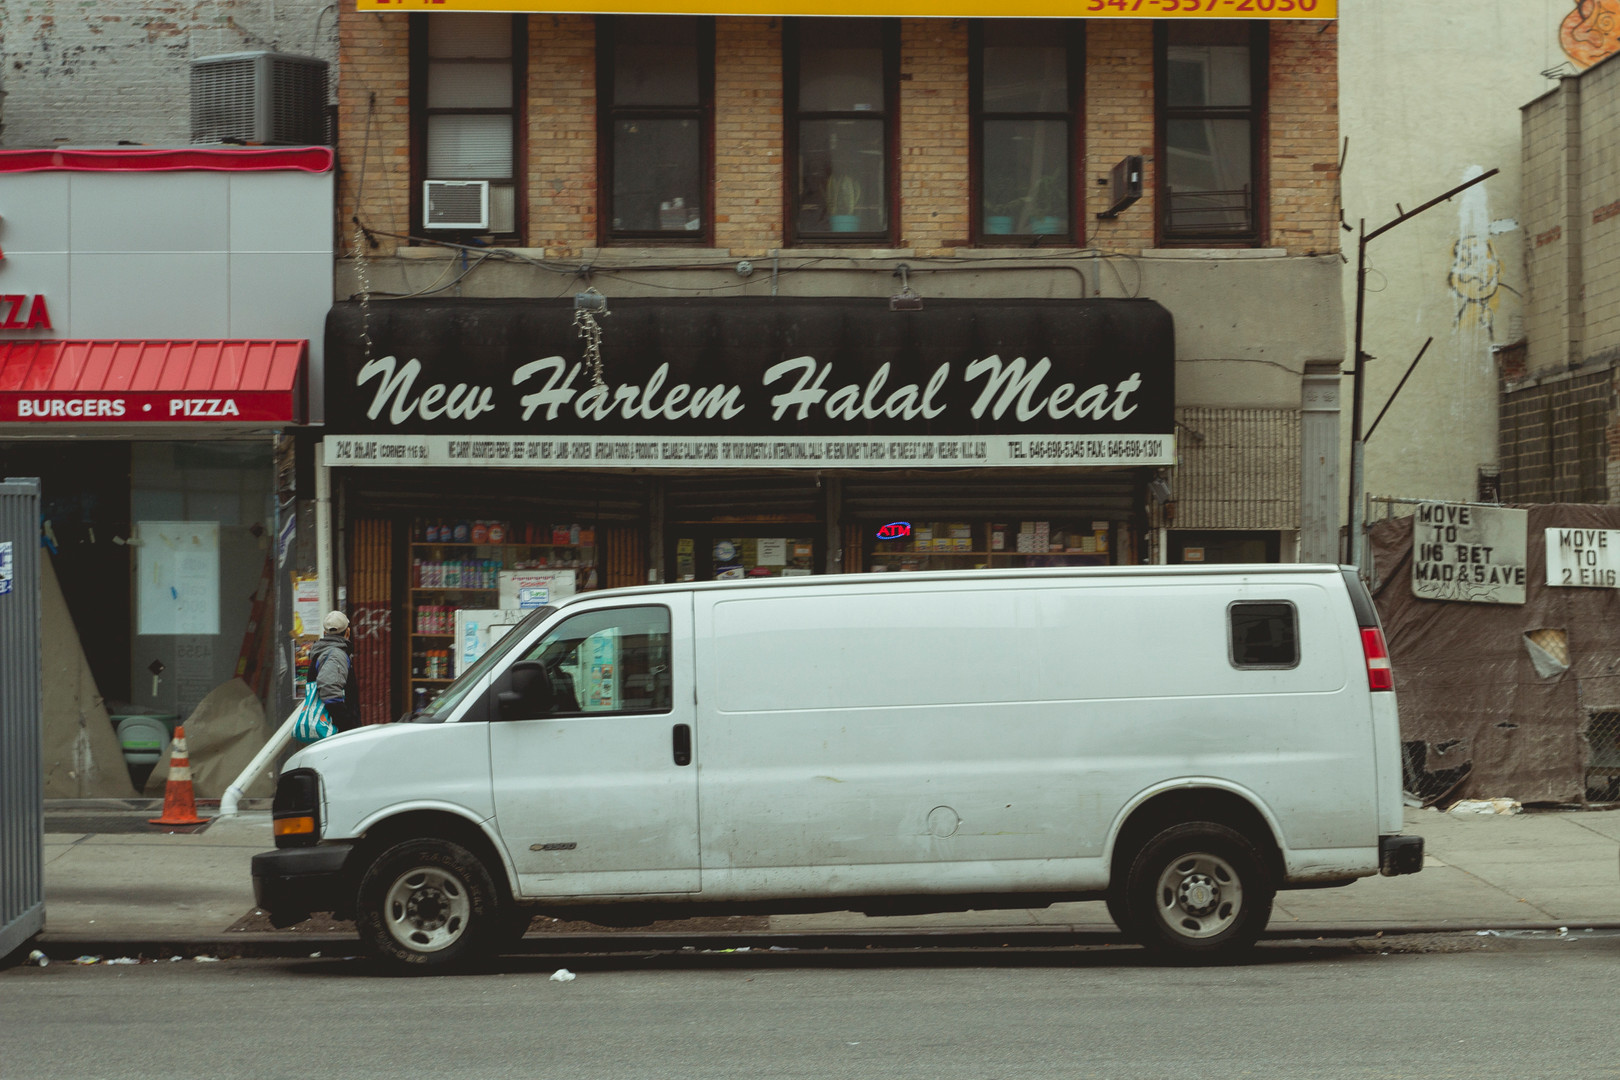 A Van is parked in Harlem. December 2014